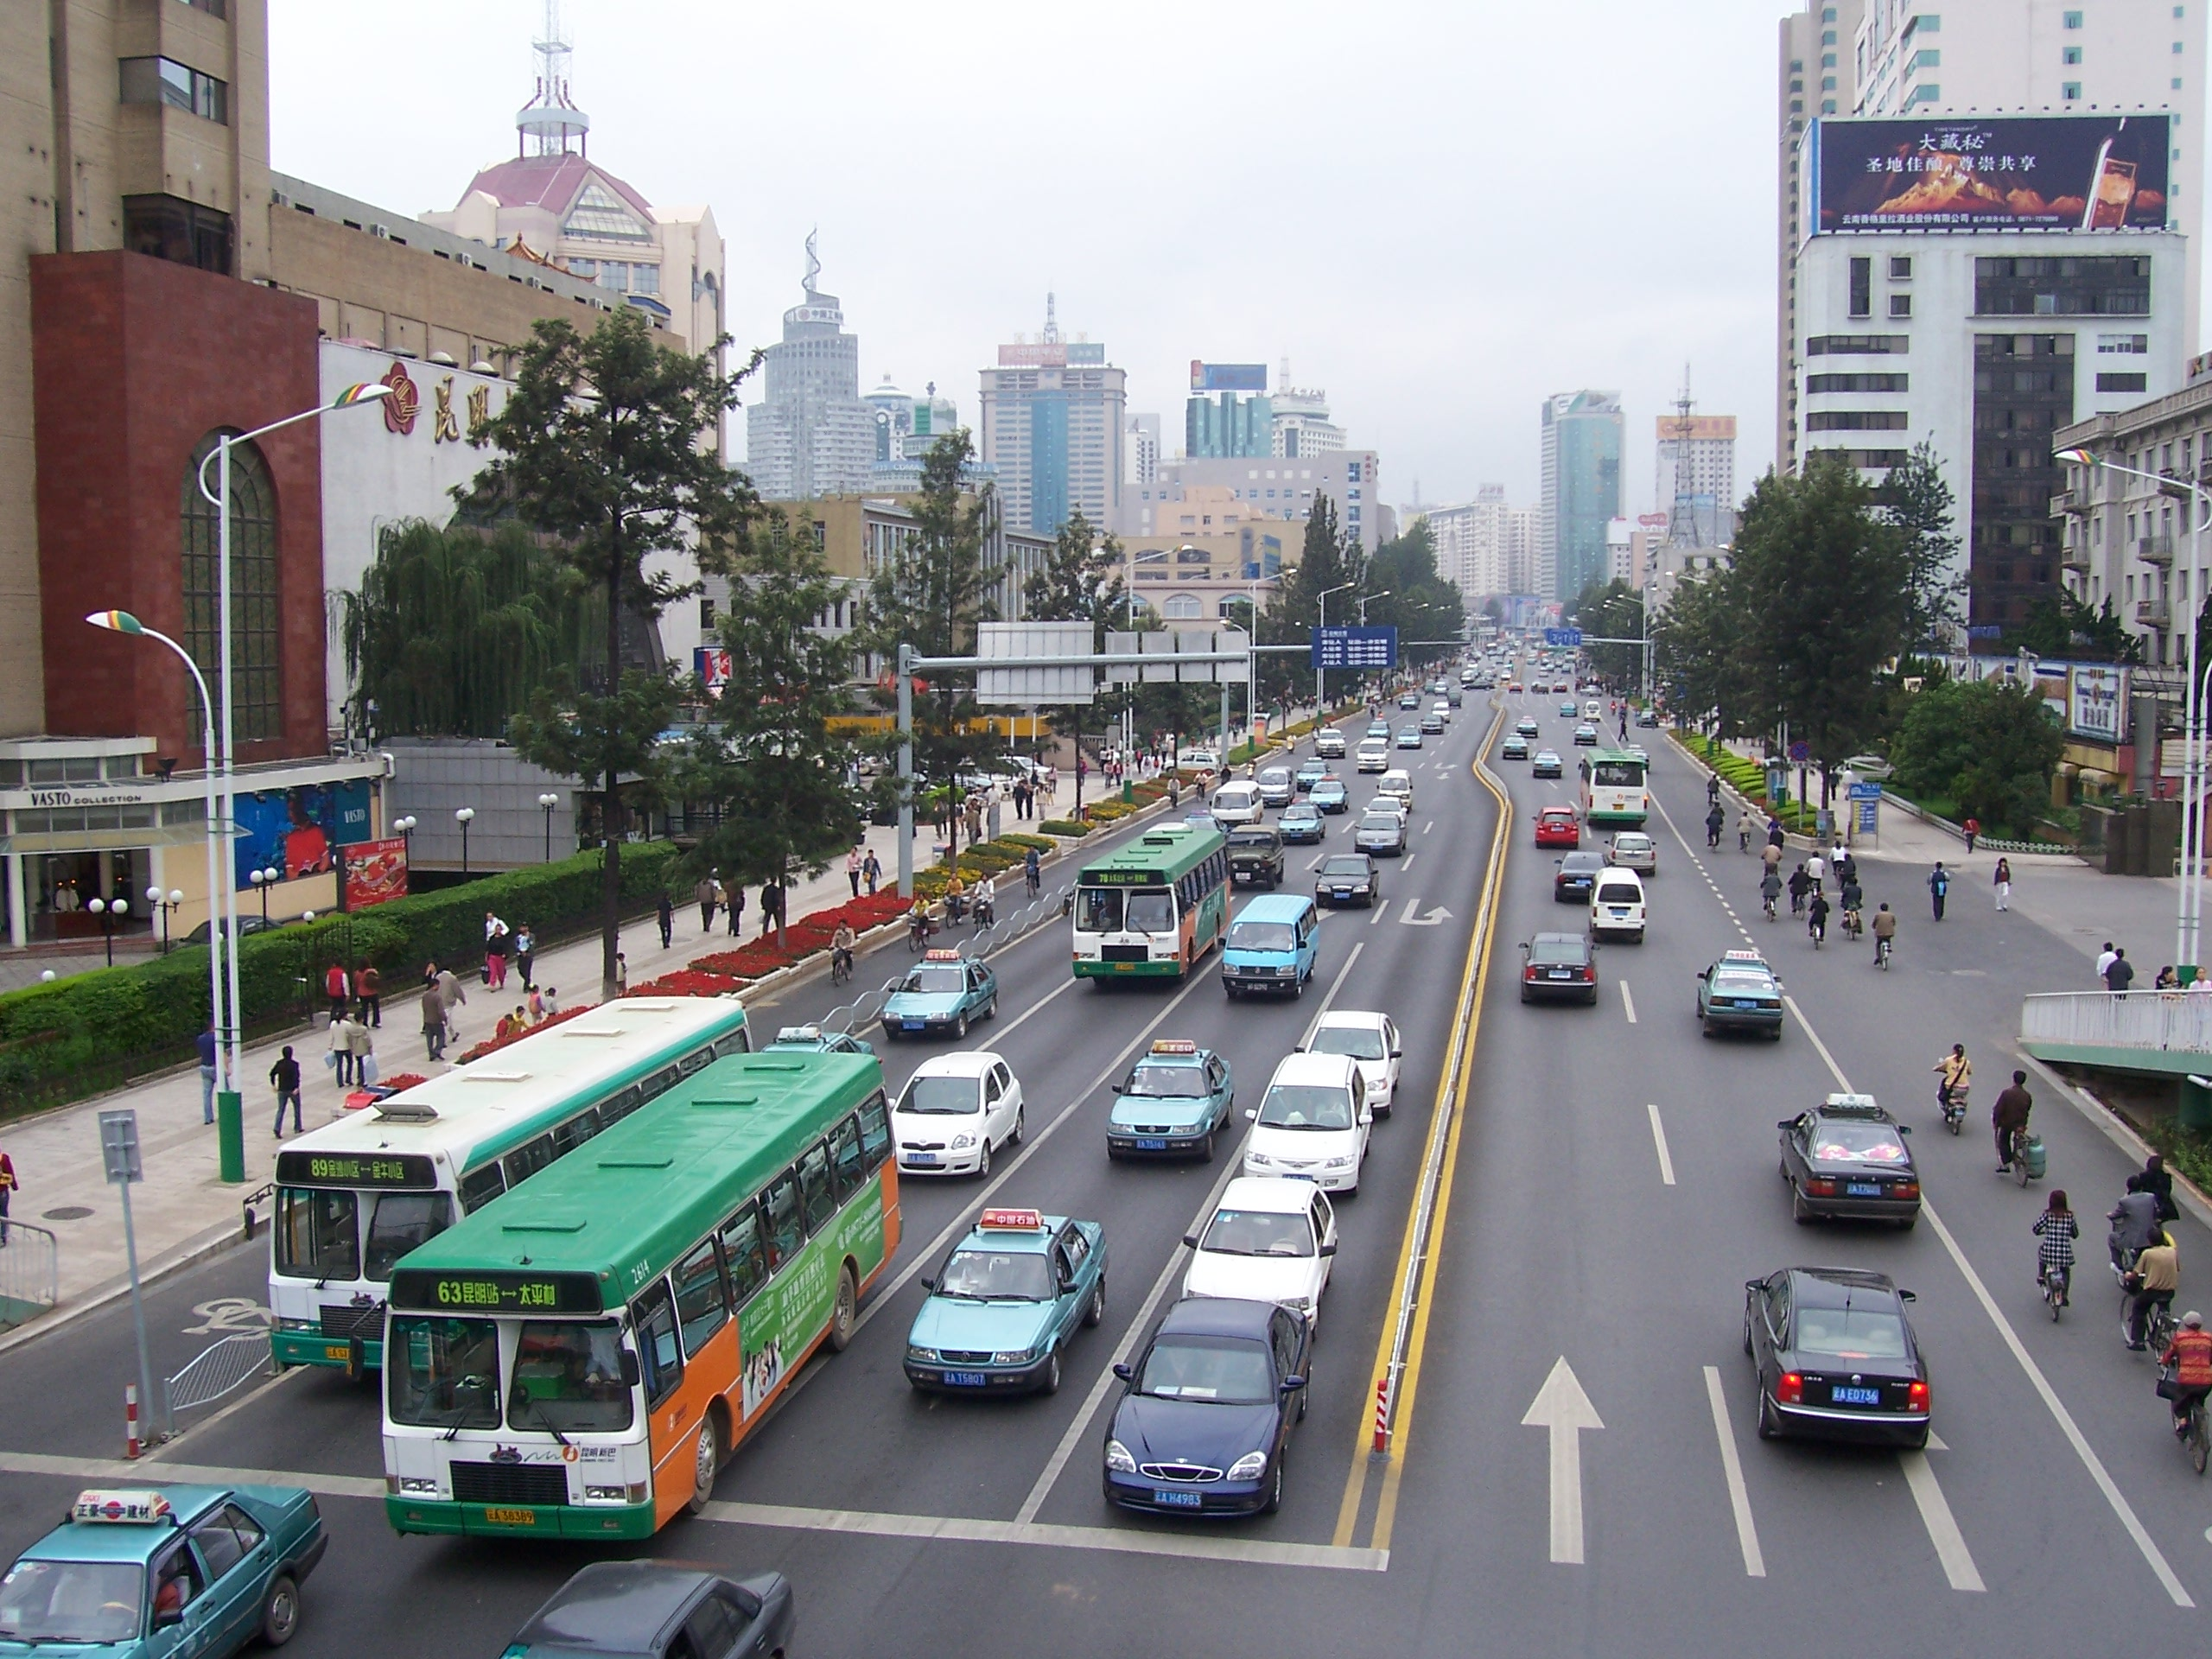 Kunming China  city photos : Kunming street Wikipedia, the free encyclopedia